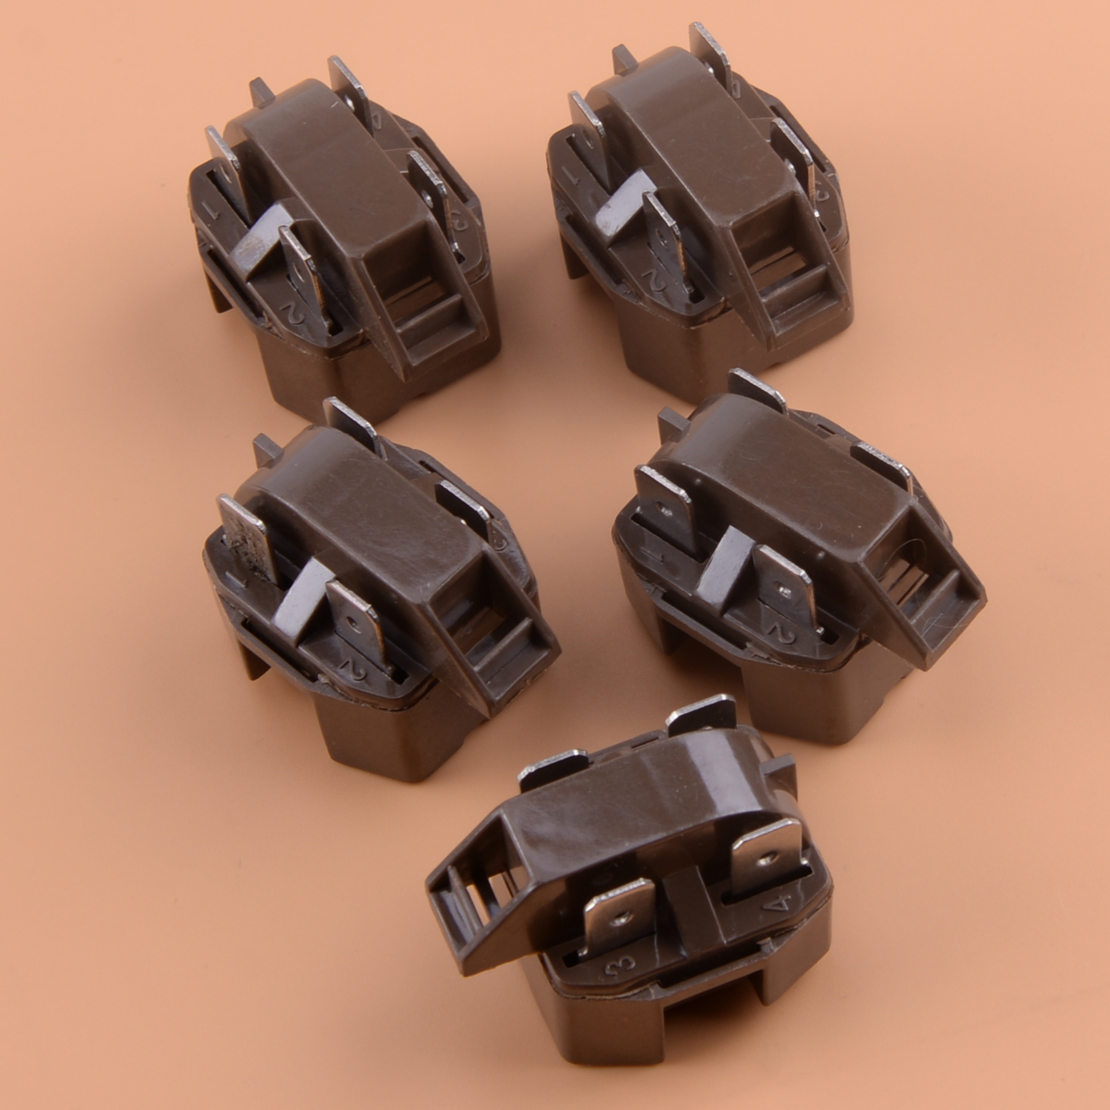 5pcs 4 Pin PTC Start Relay IC-4 Fit For Refrigerator Freezer Compressor Appliance Parts 2262185